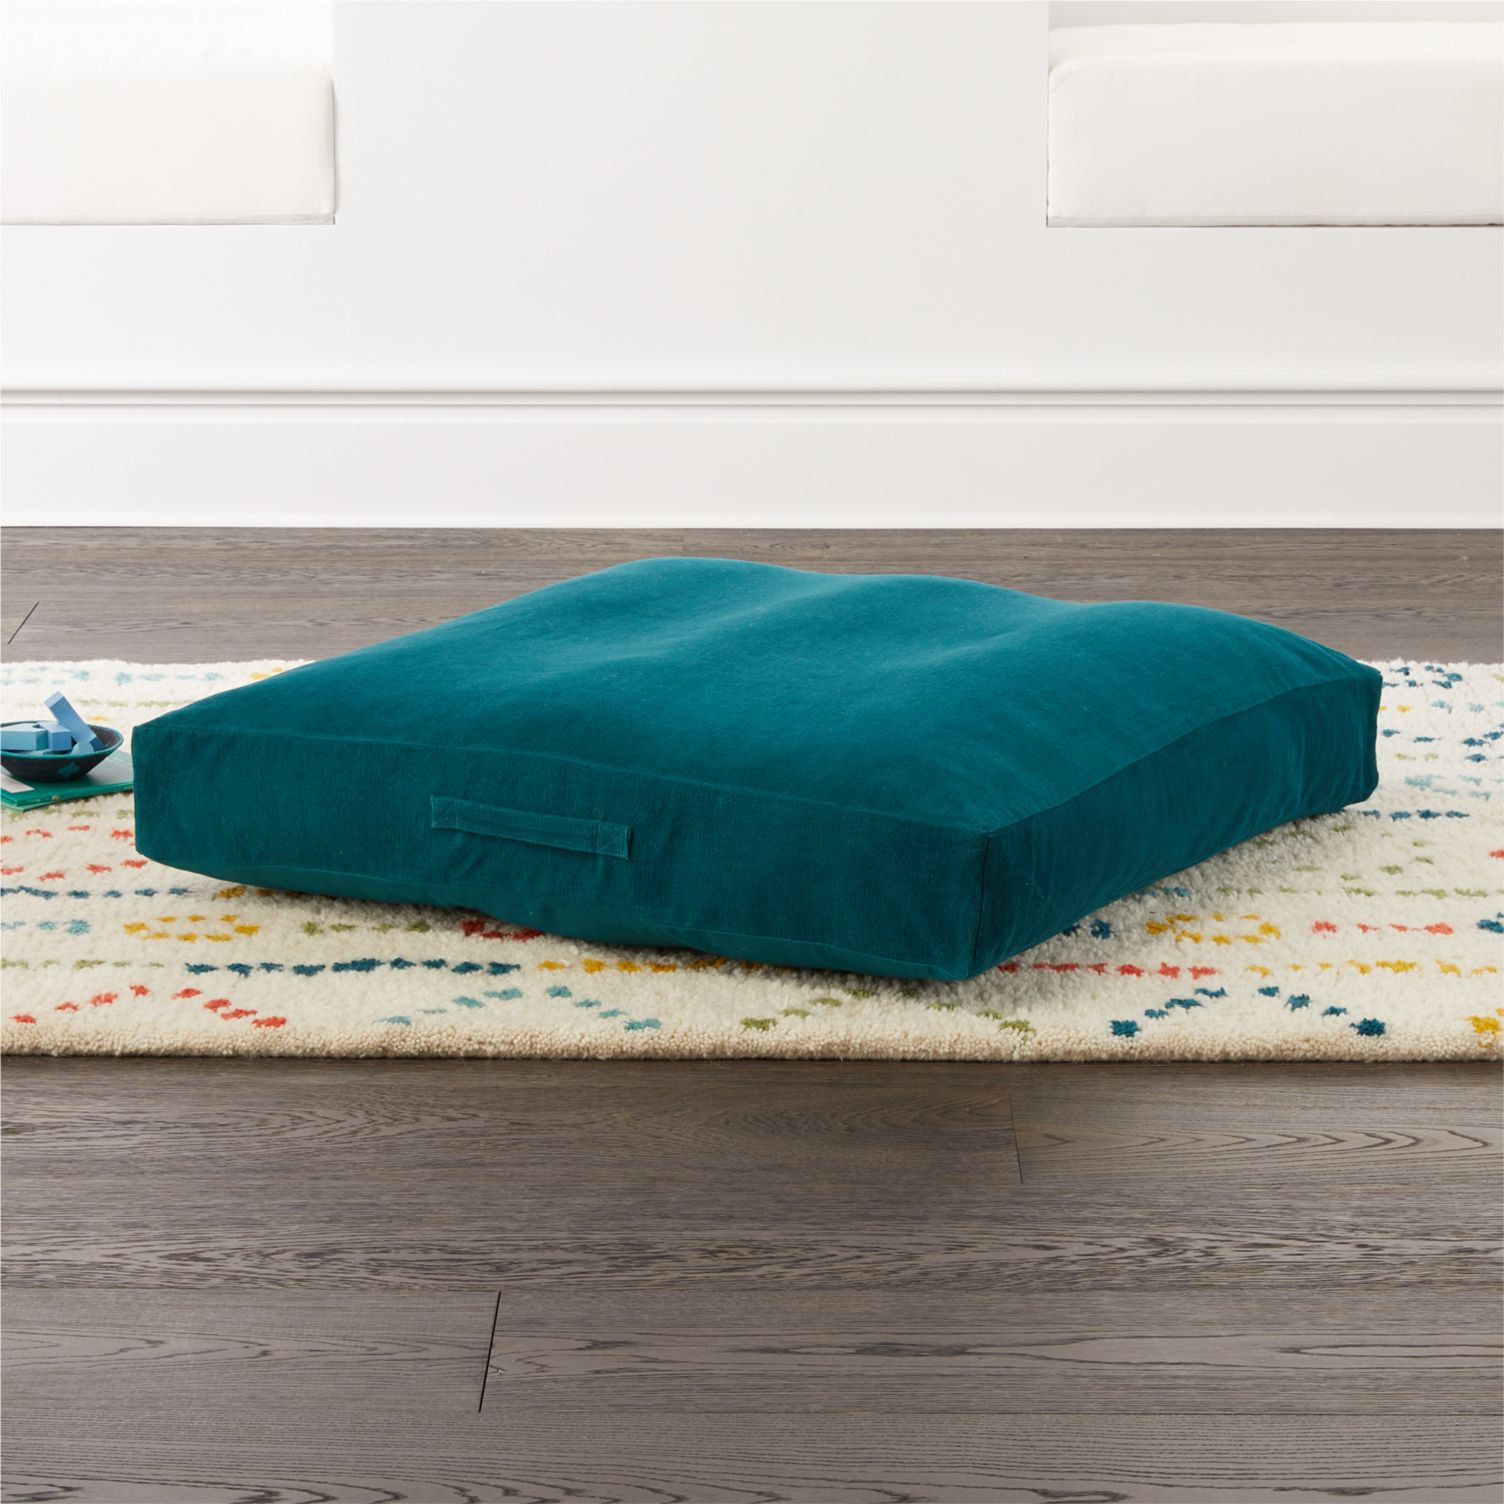 Teal floor cushion from Crate & Kids